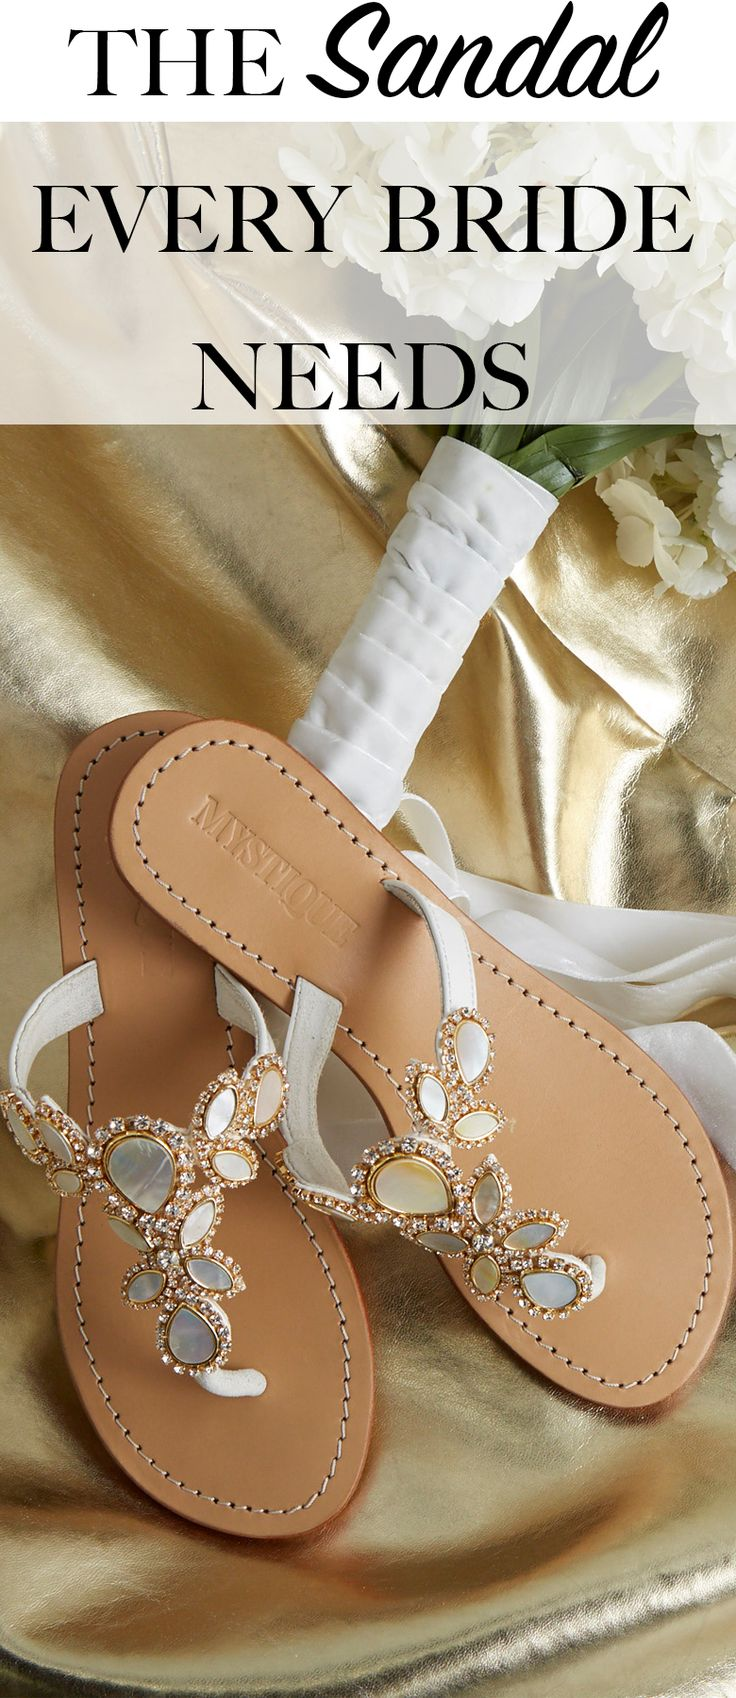 Every woman wants to be comfortable on their wedding day. Mystique sandals has over 100 styles for you! #wedding #giftideas #beautiful